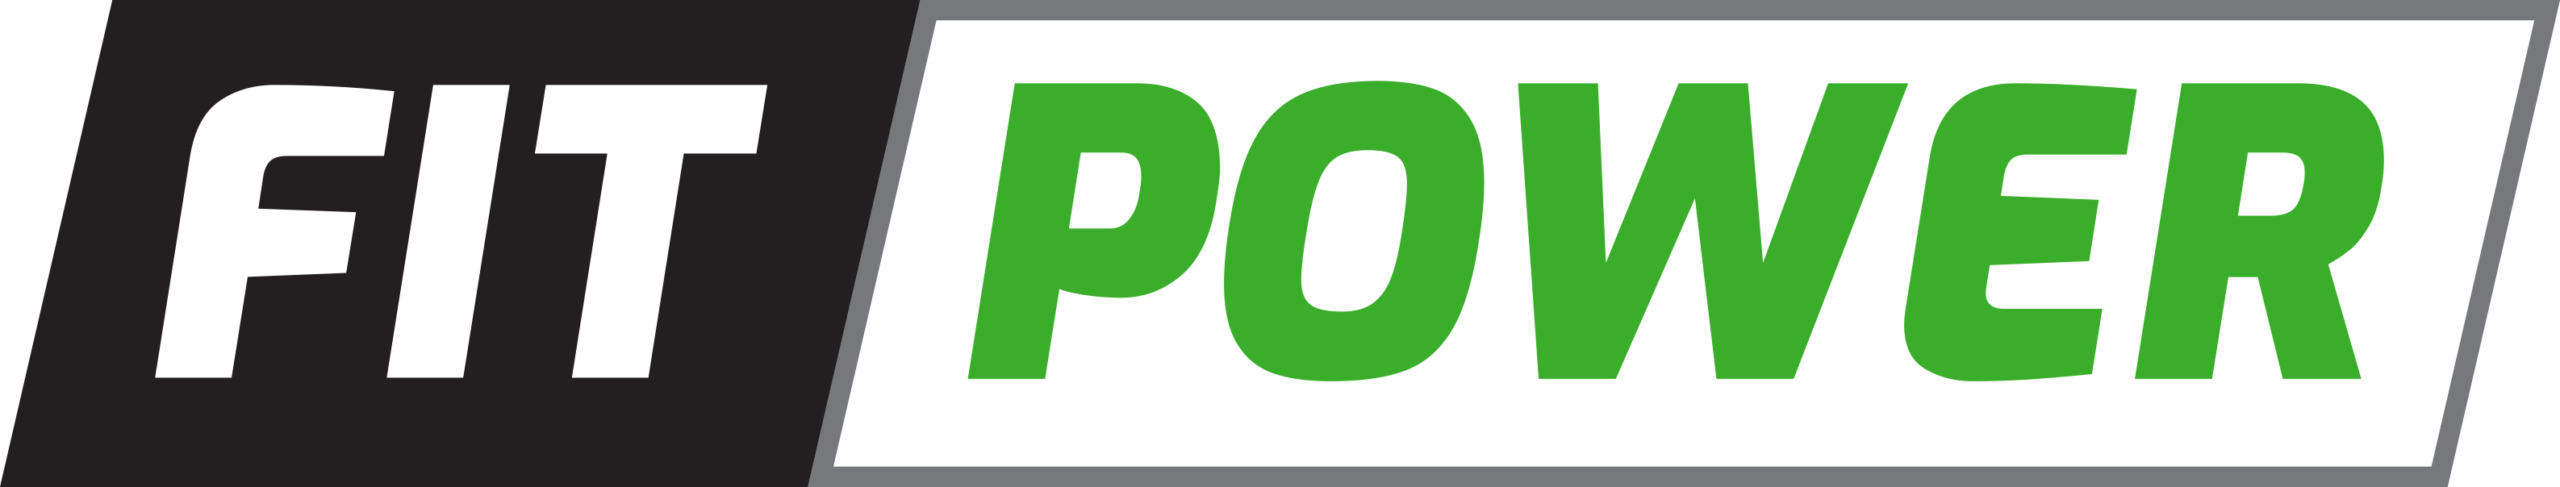 Fitpower logo